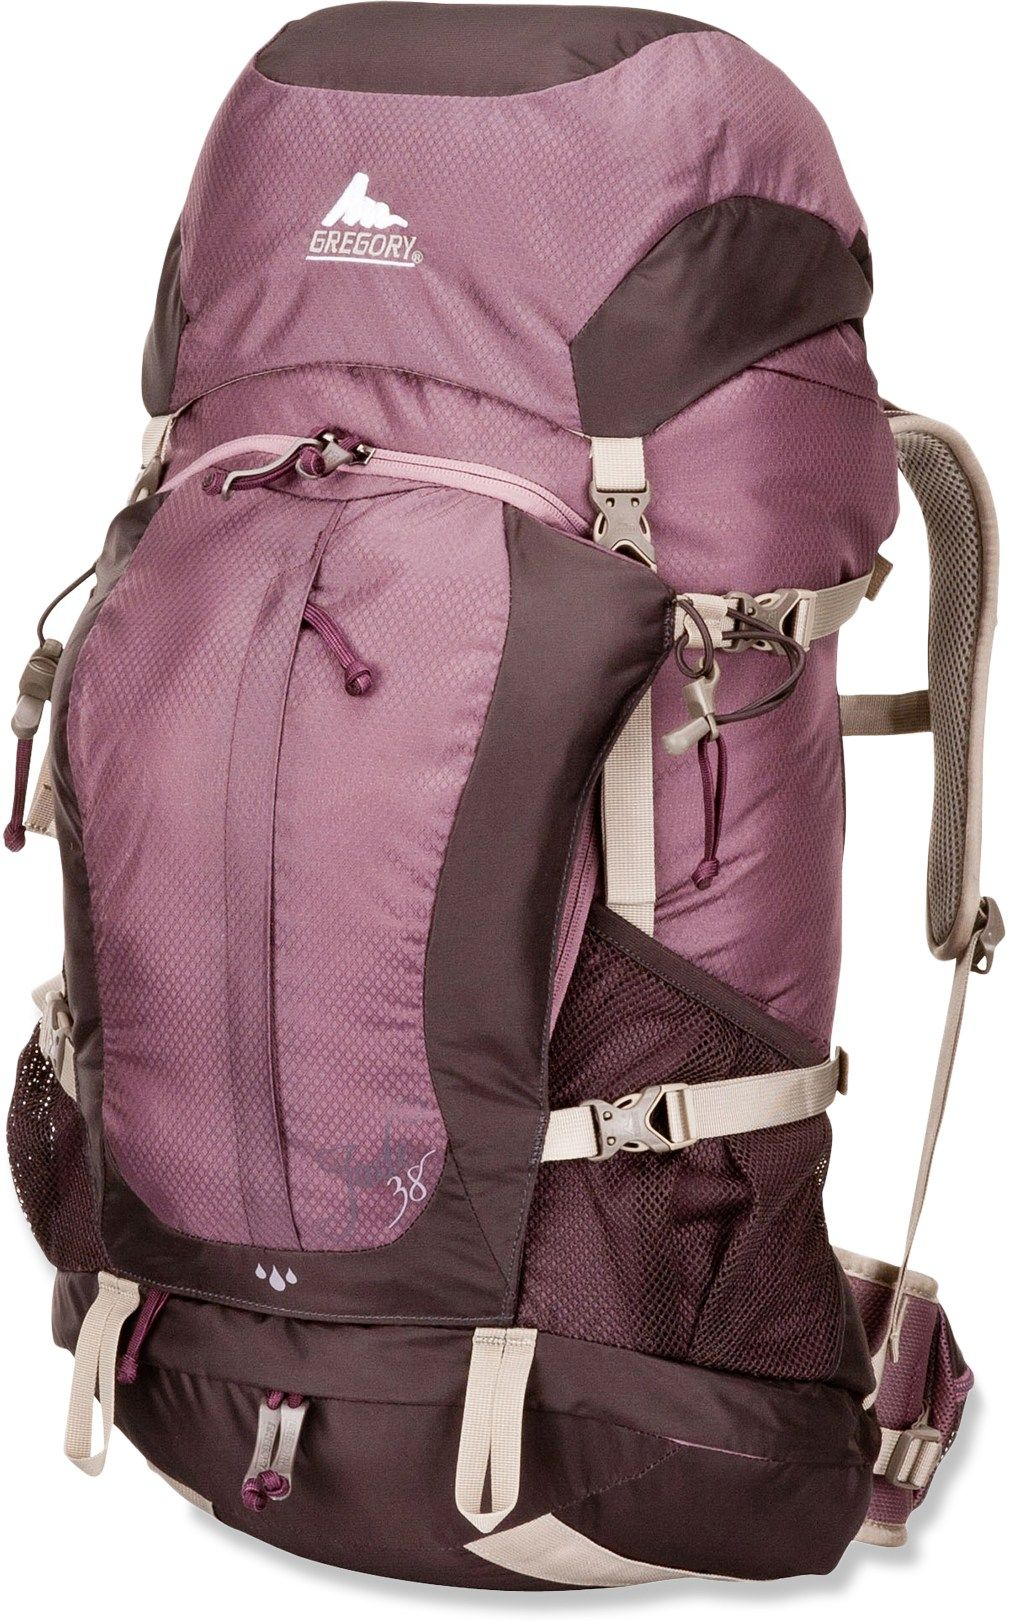 Gregory Trip Pack Weekend Or For Good Women's 38 Size A Jade 4Awf4HTnr